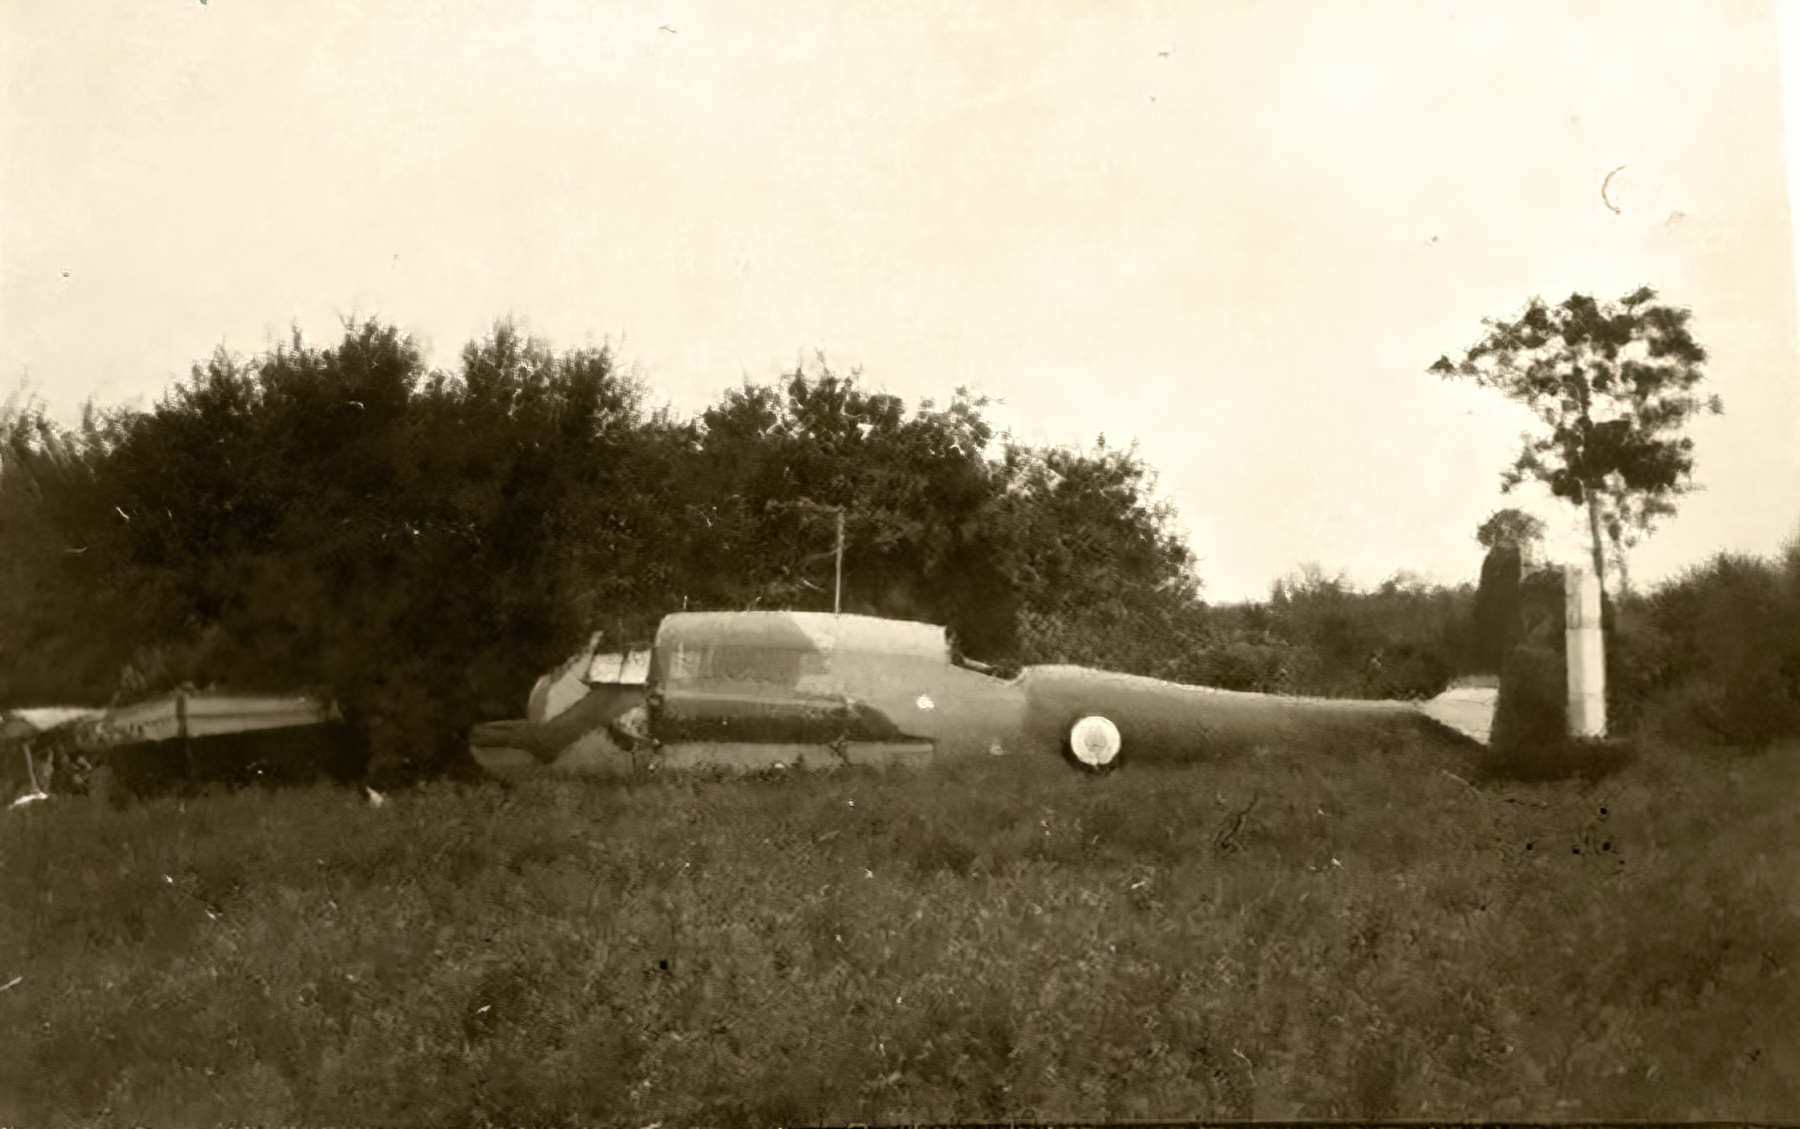 French Airforce Breguet Bre 691 force landed during the air war over France May 1940 ebay 02